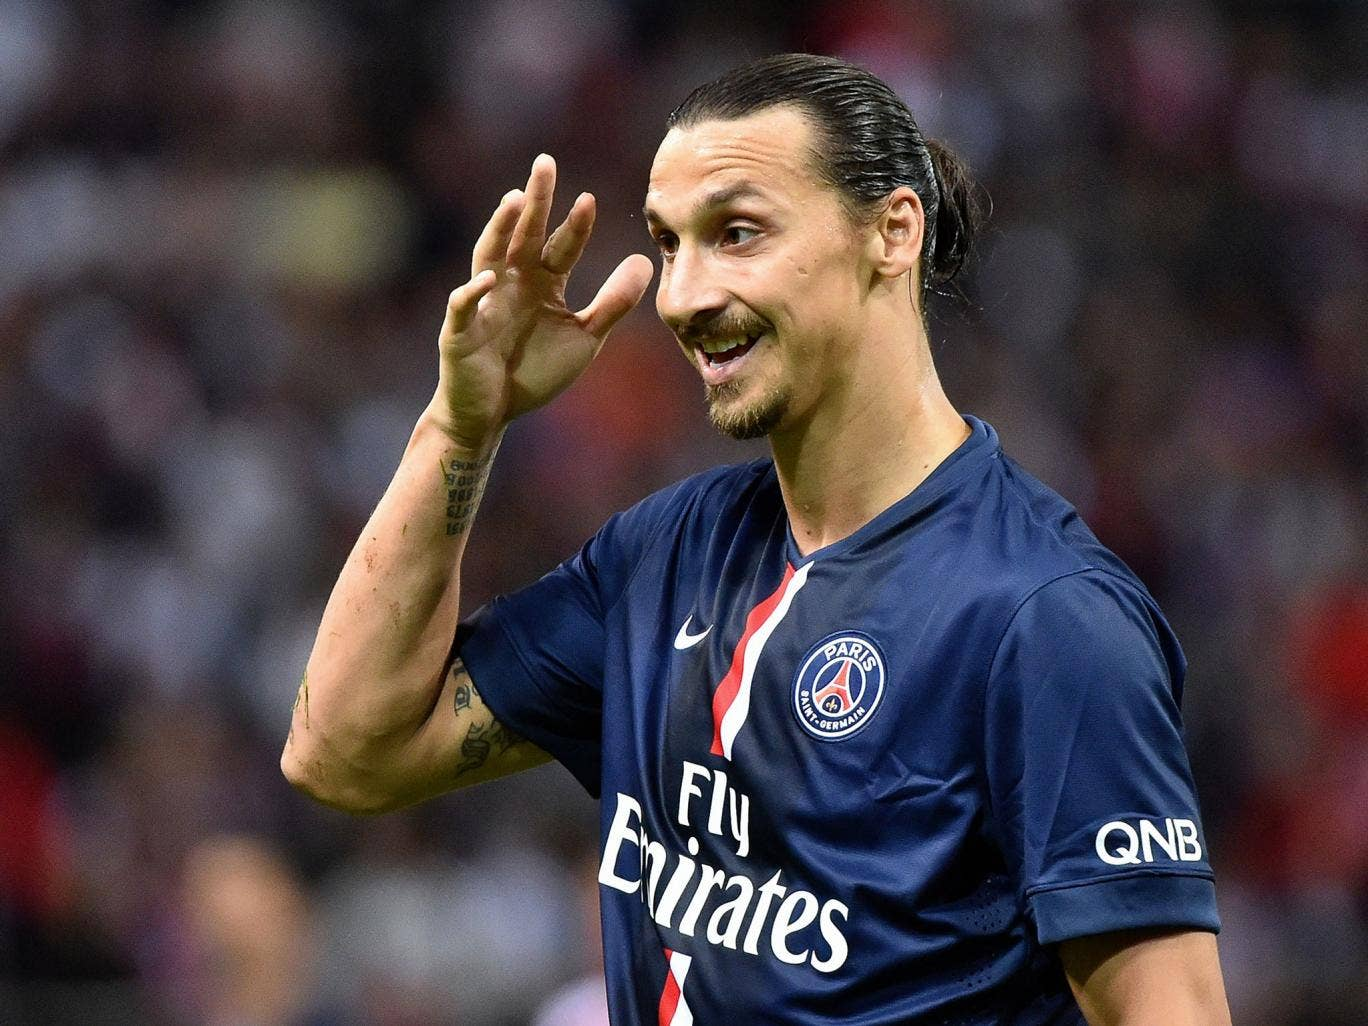 Paris Saint-Germain striker Zlatan Ibrahimovich has donated £30,000 to help the Swedish learning difficulties national team compete in the INAS World Championships in Brazil.